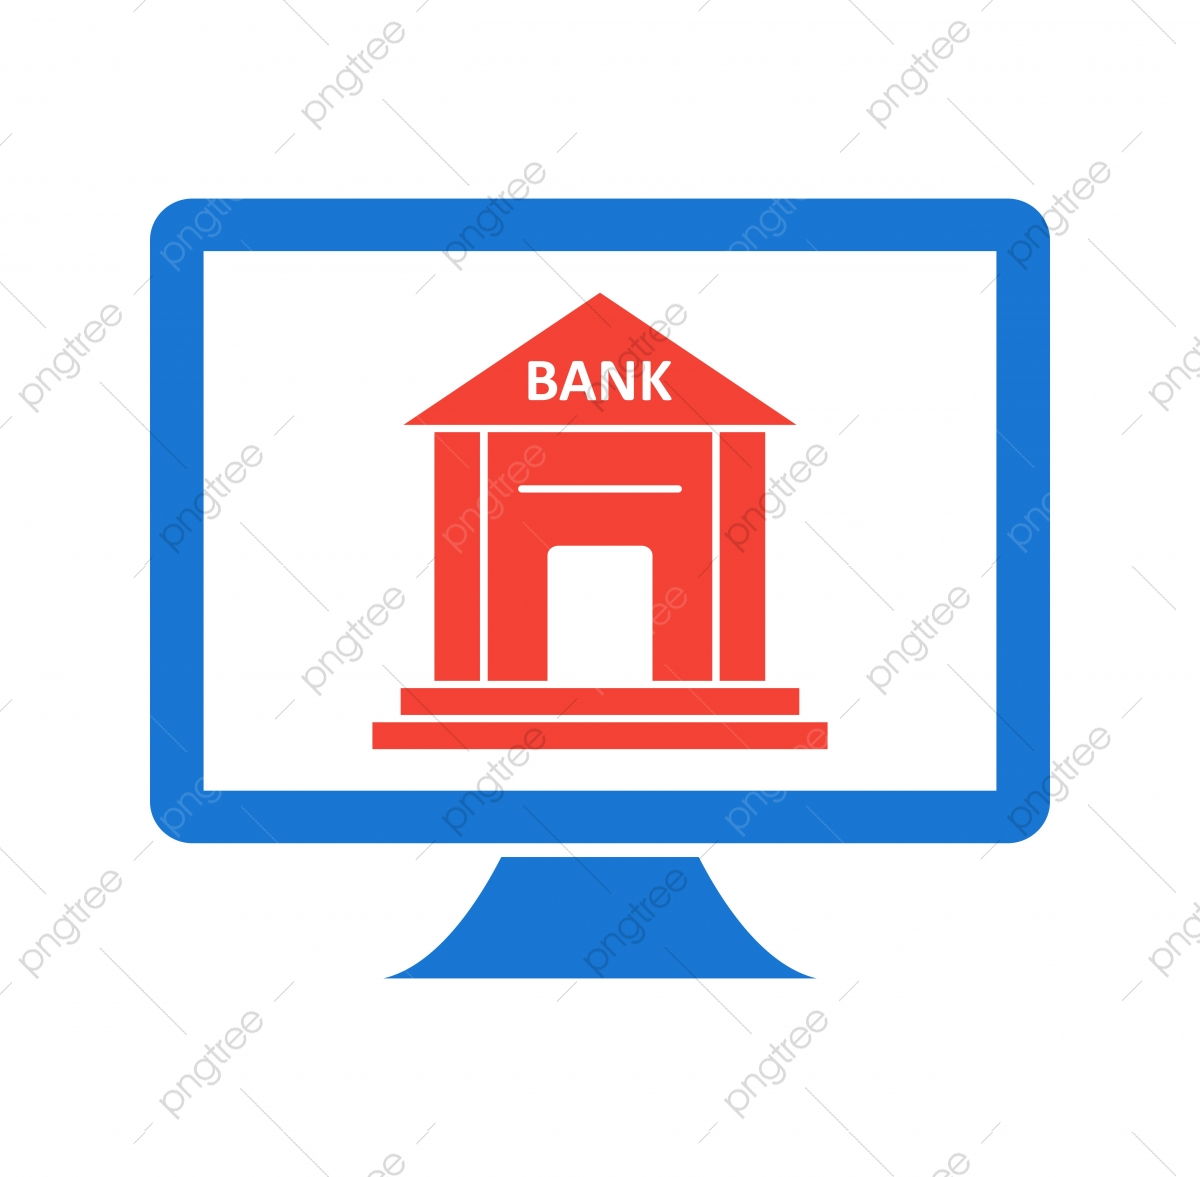 Internet Banking Icon In Trendy Style Isolated Background Internet Icons Style Icons Background Icons Png And Vector With Transparent Background For Free Download